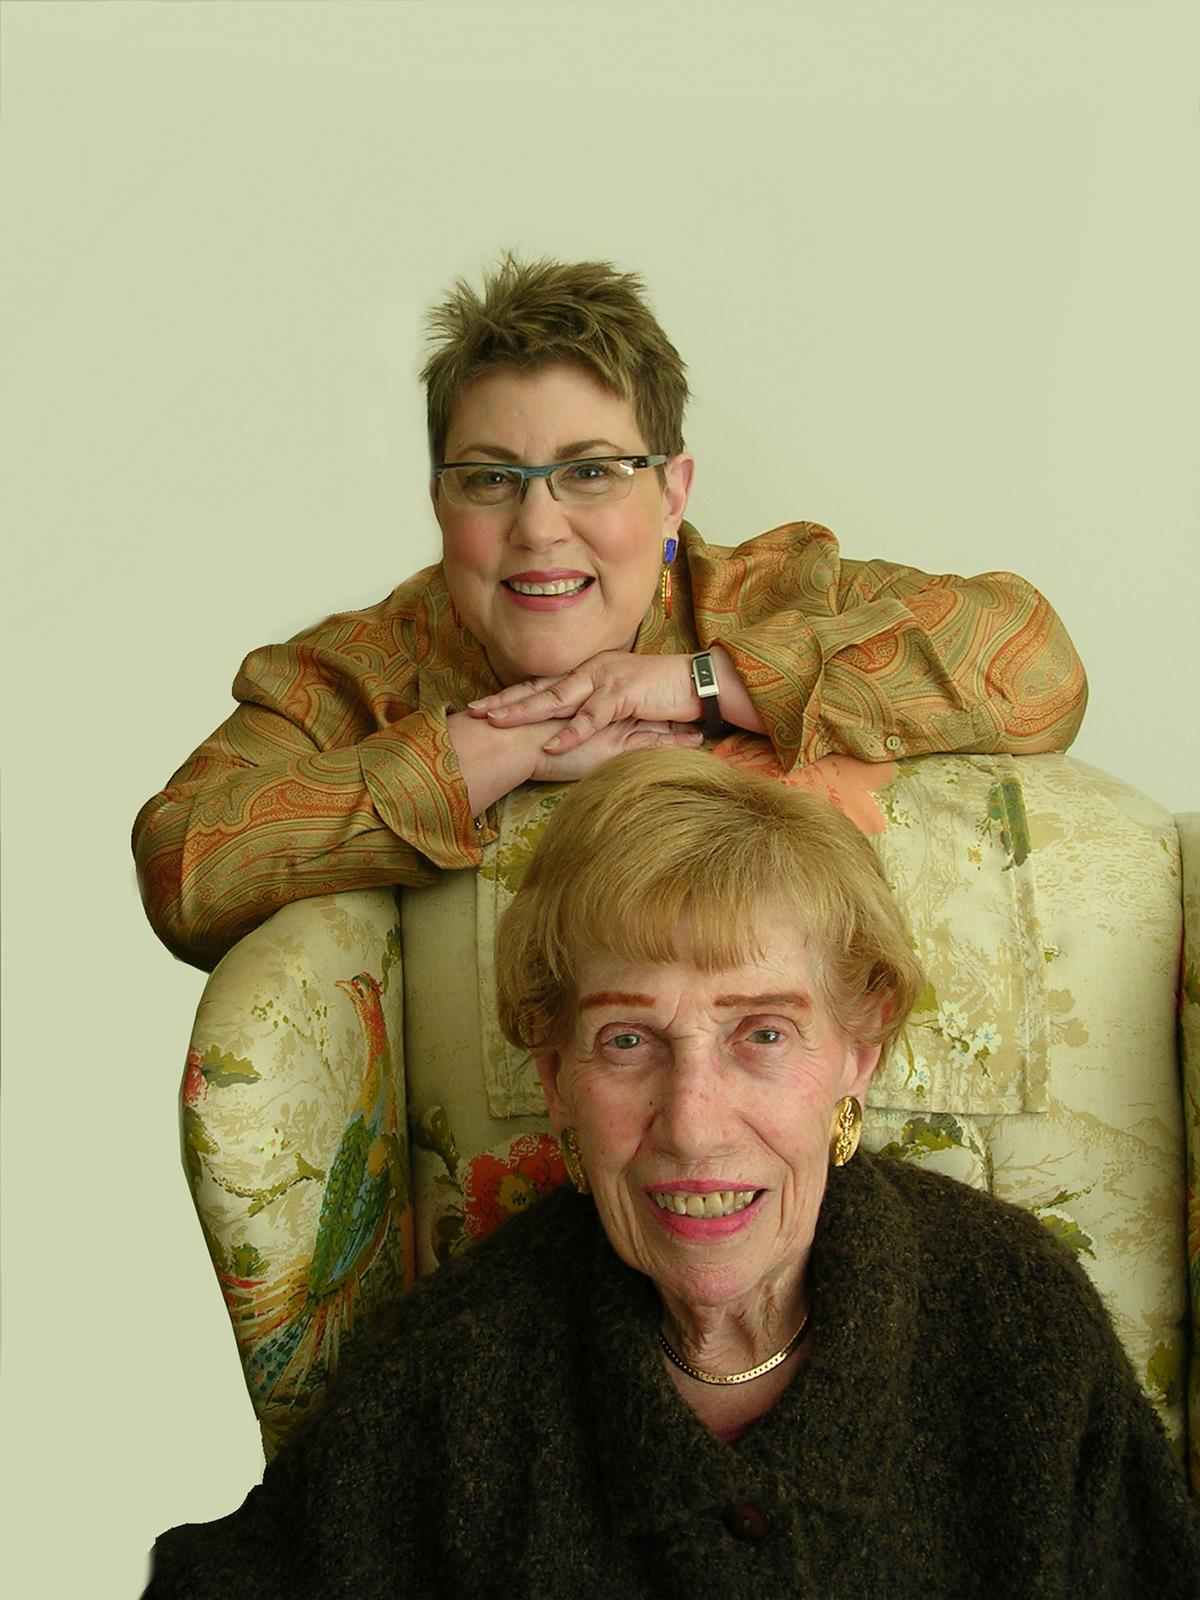 Priscilla And Ronne Kurlancheek Two Generations Of Furniture Expertise